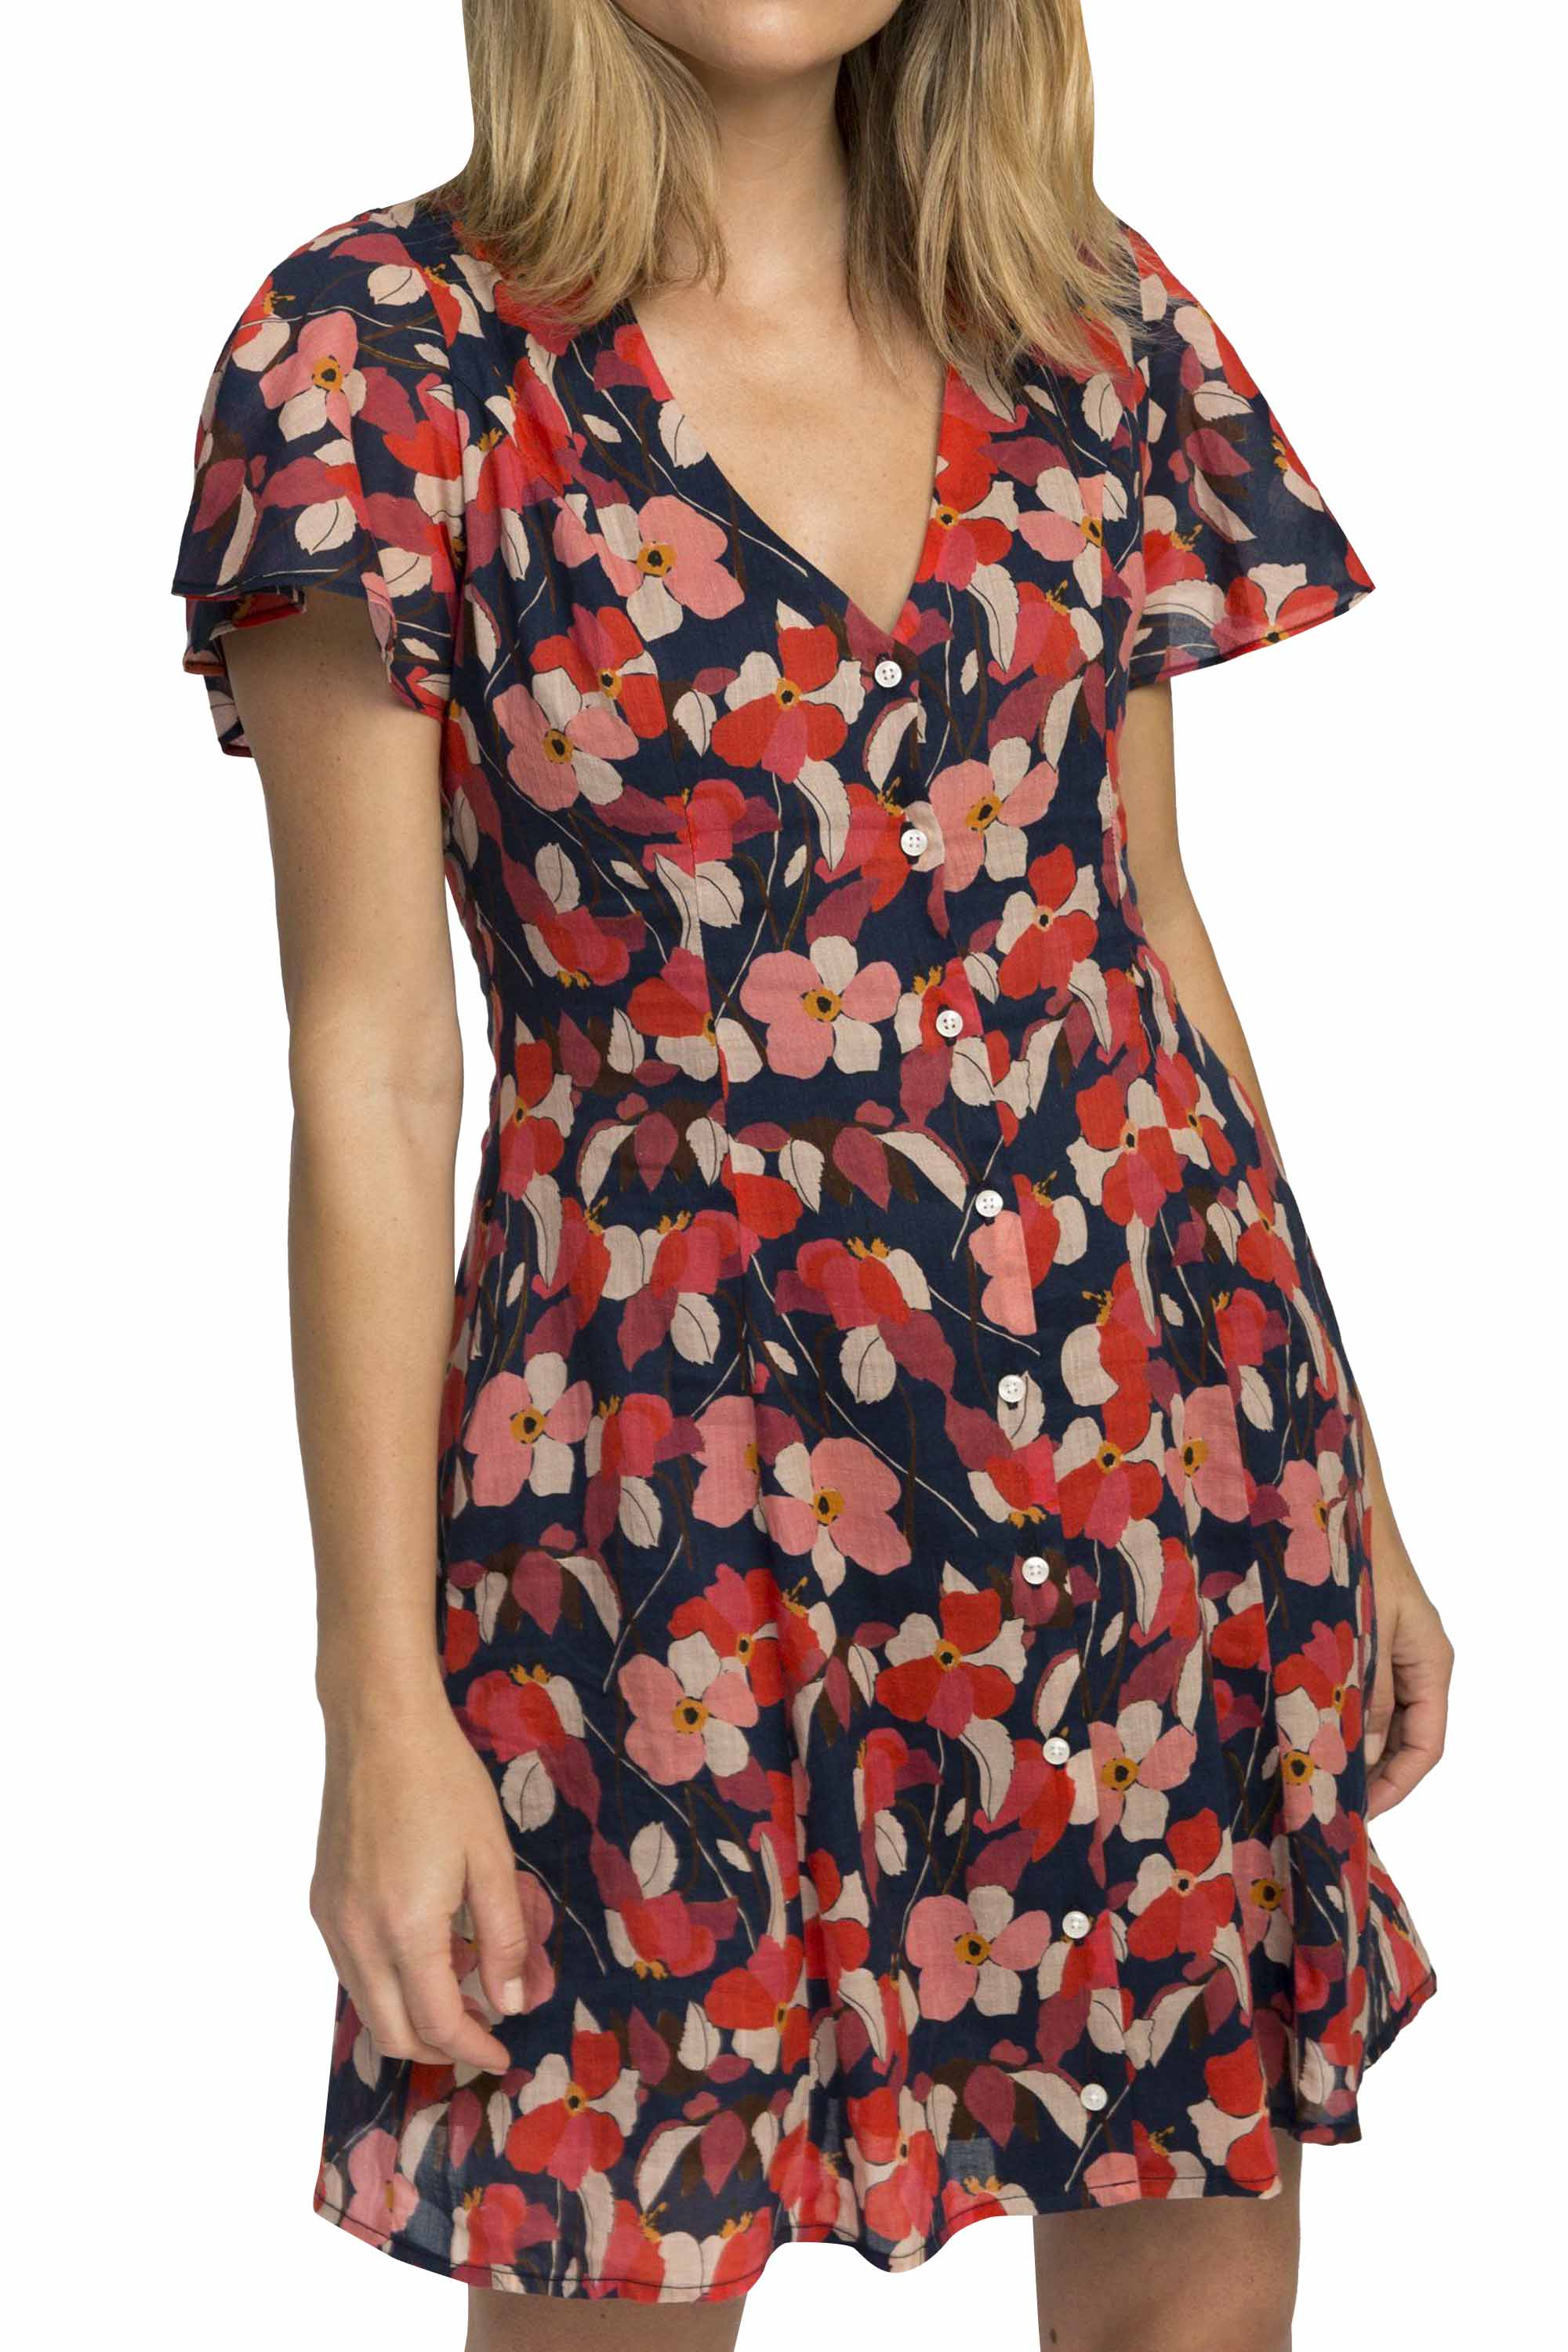 Sistine dress NAVY FLORAL by Trovata - 1